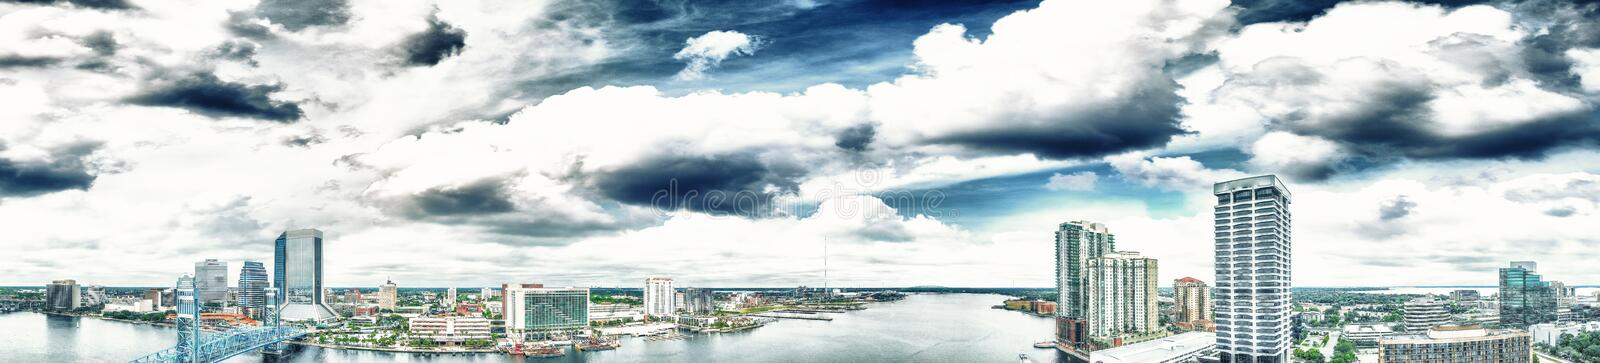 Jacksonville aerial panoramic view at dusk, Florida.  royalty free stock photography